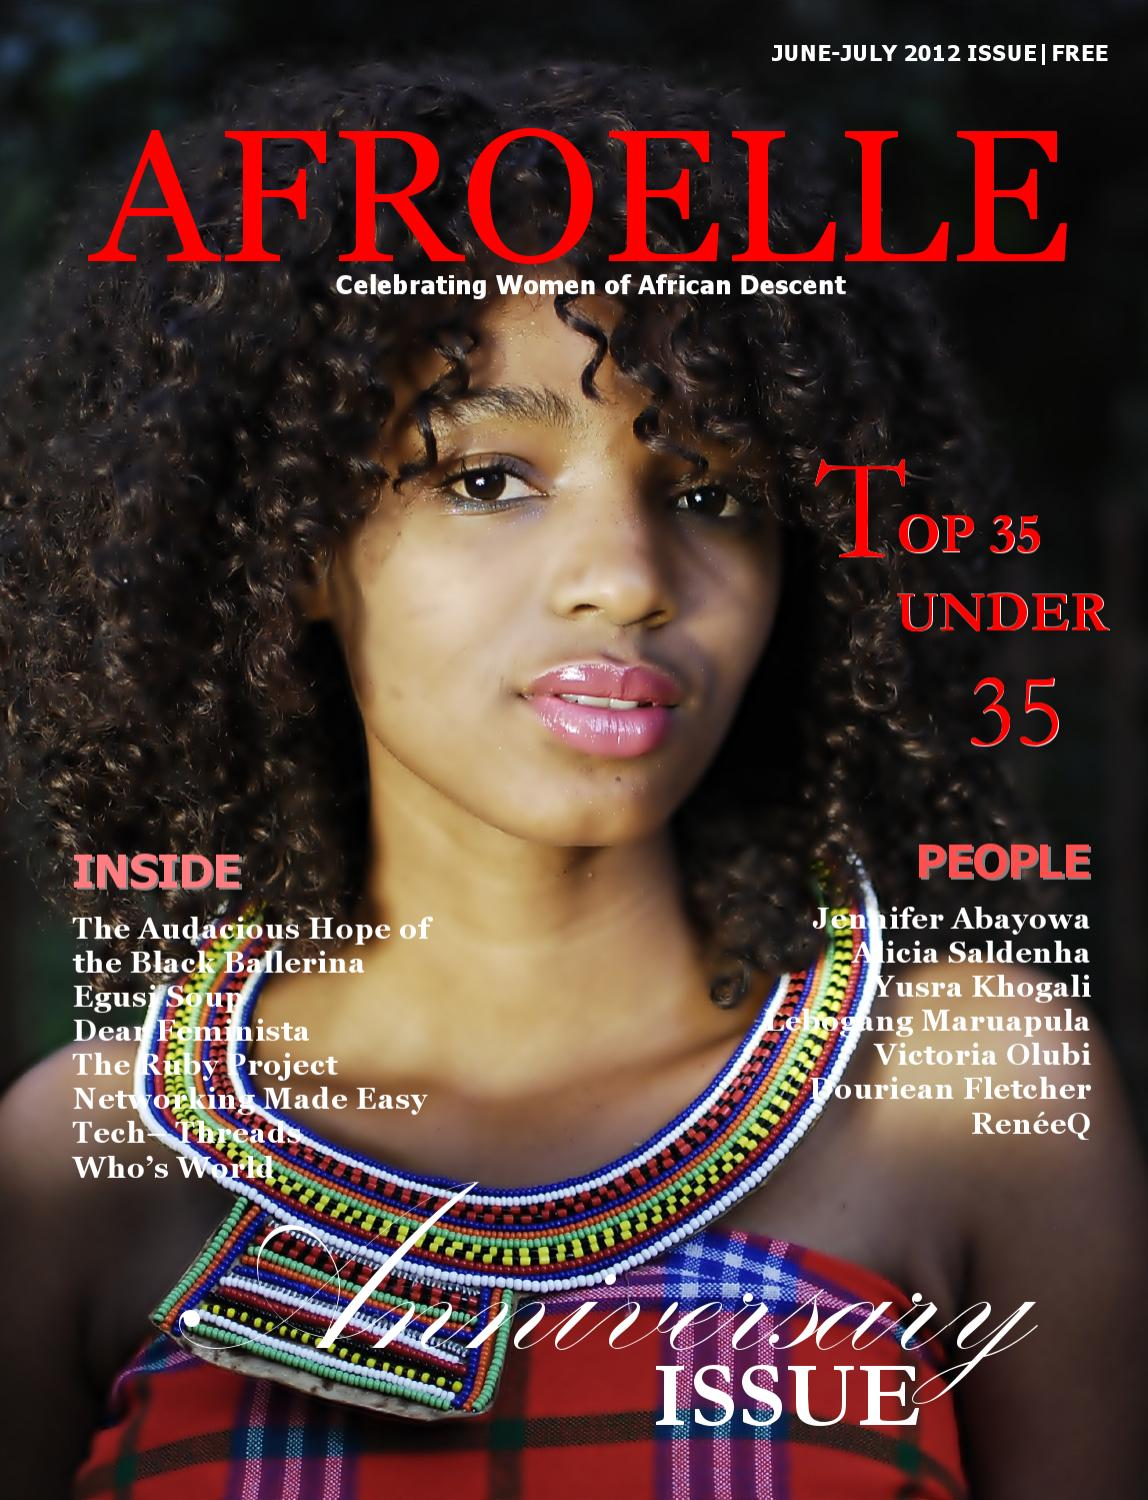 Issuu afroelle magazine 2012 anniversary issue by for Anniversary magazine